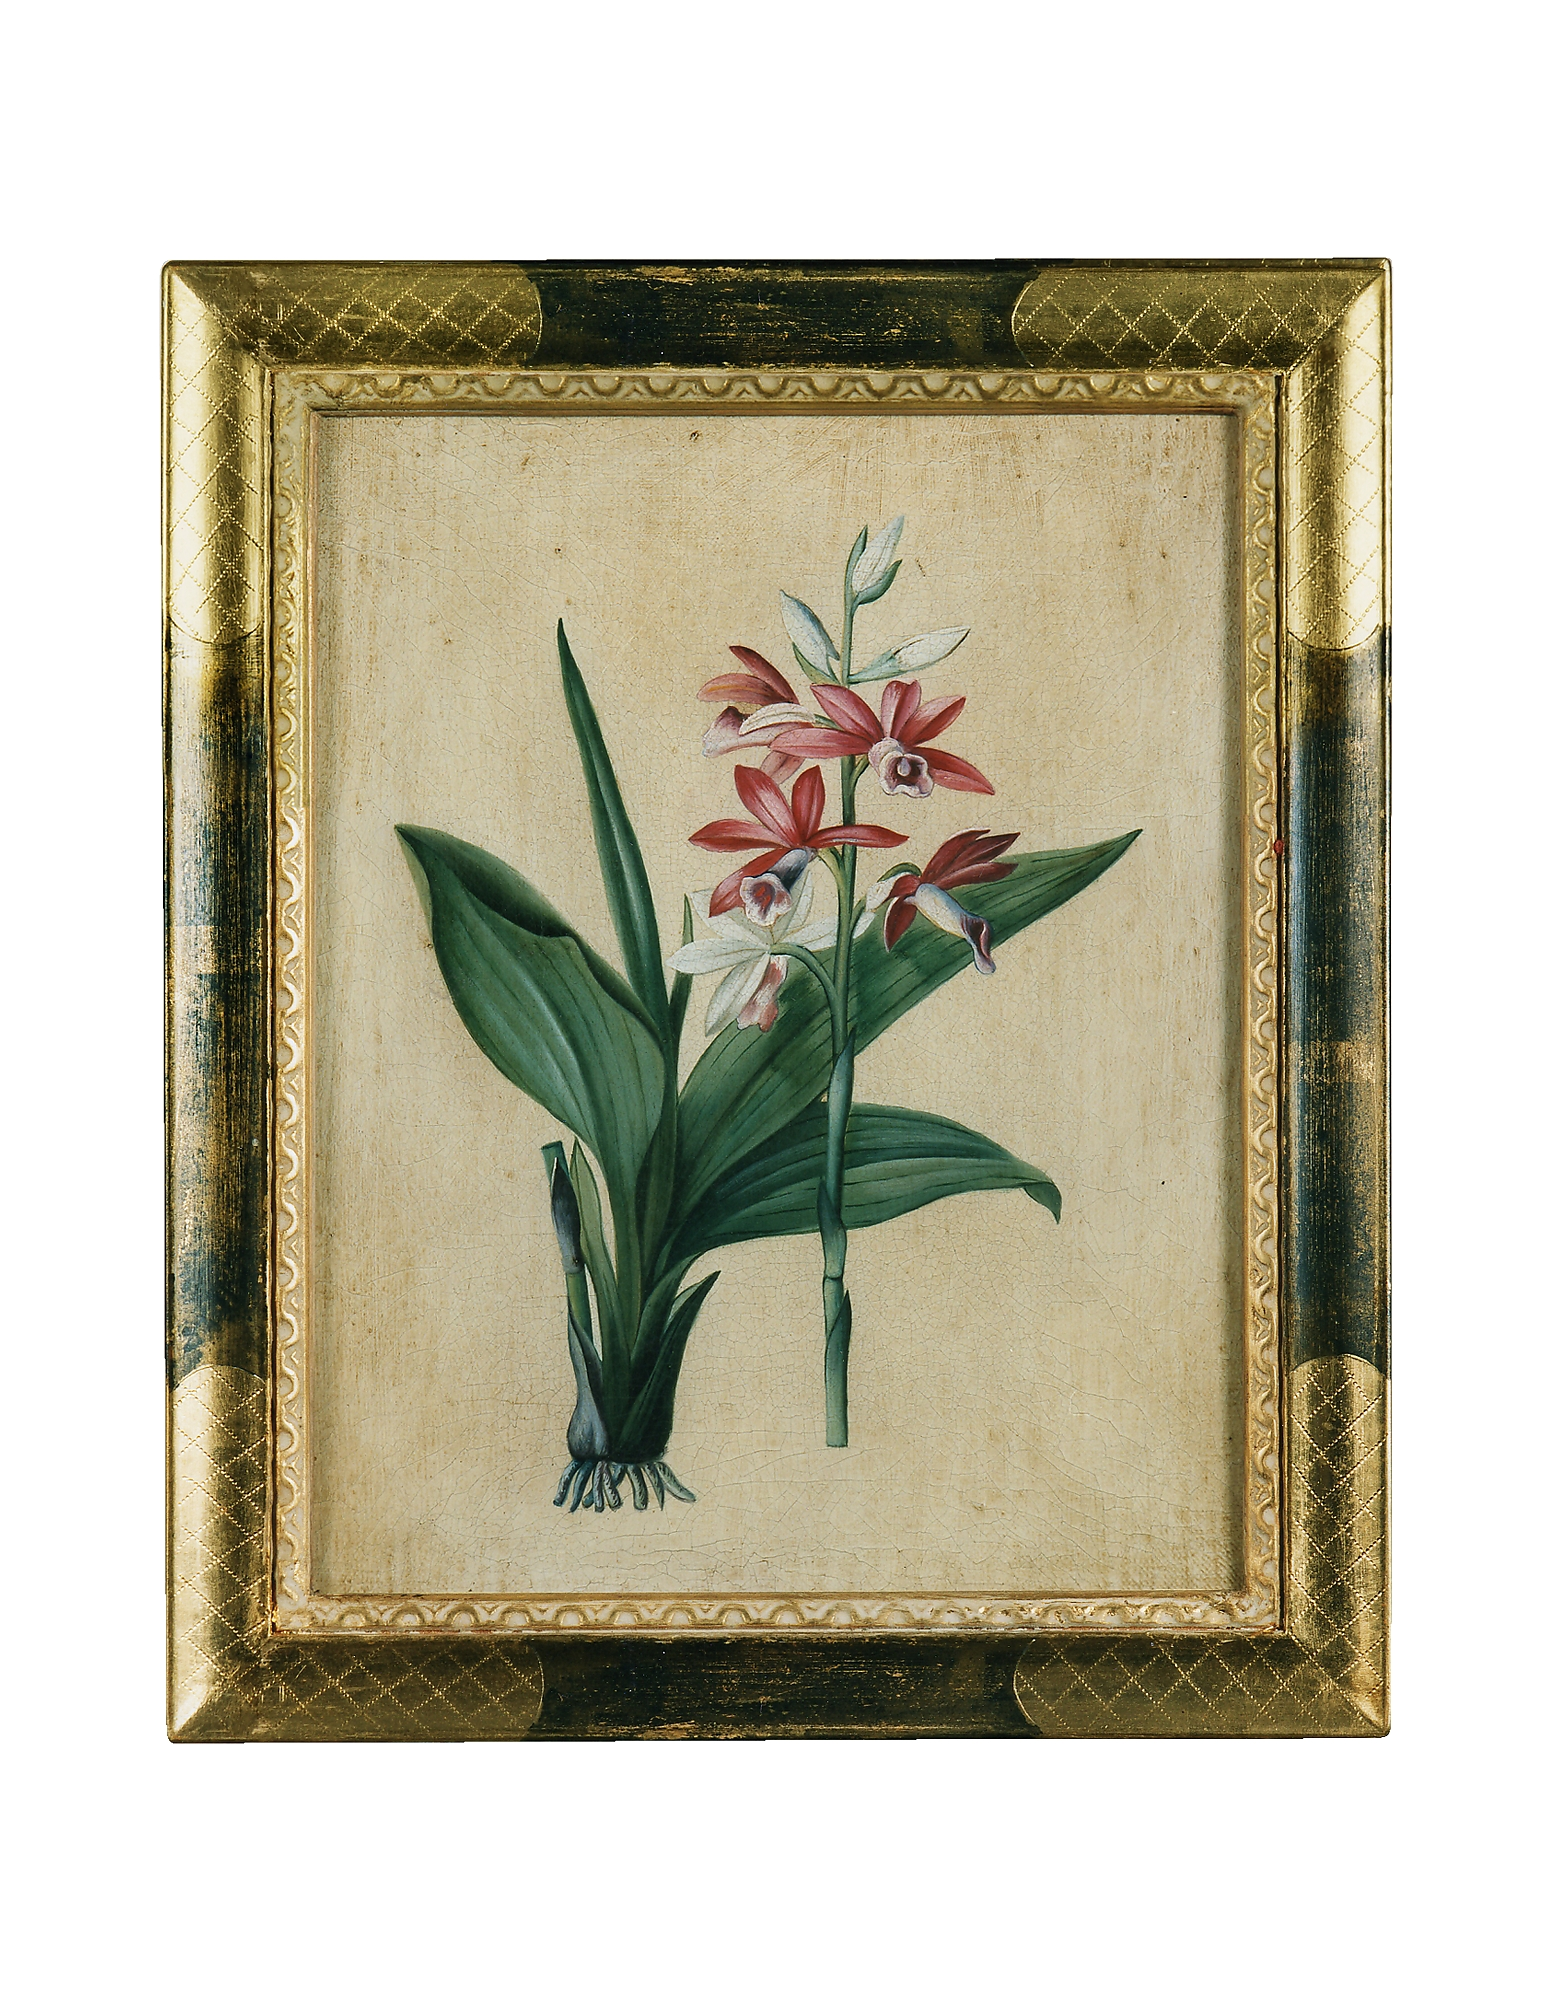 Bianchi Arte Paintings, Oil on Canvas Botanical Painting